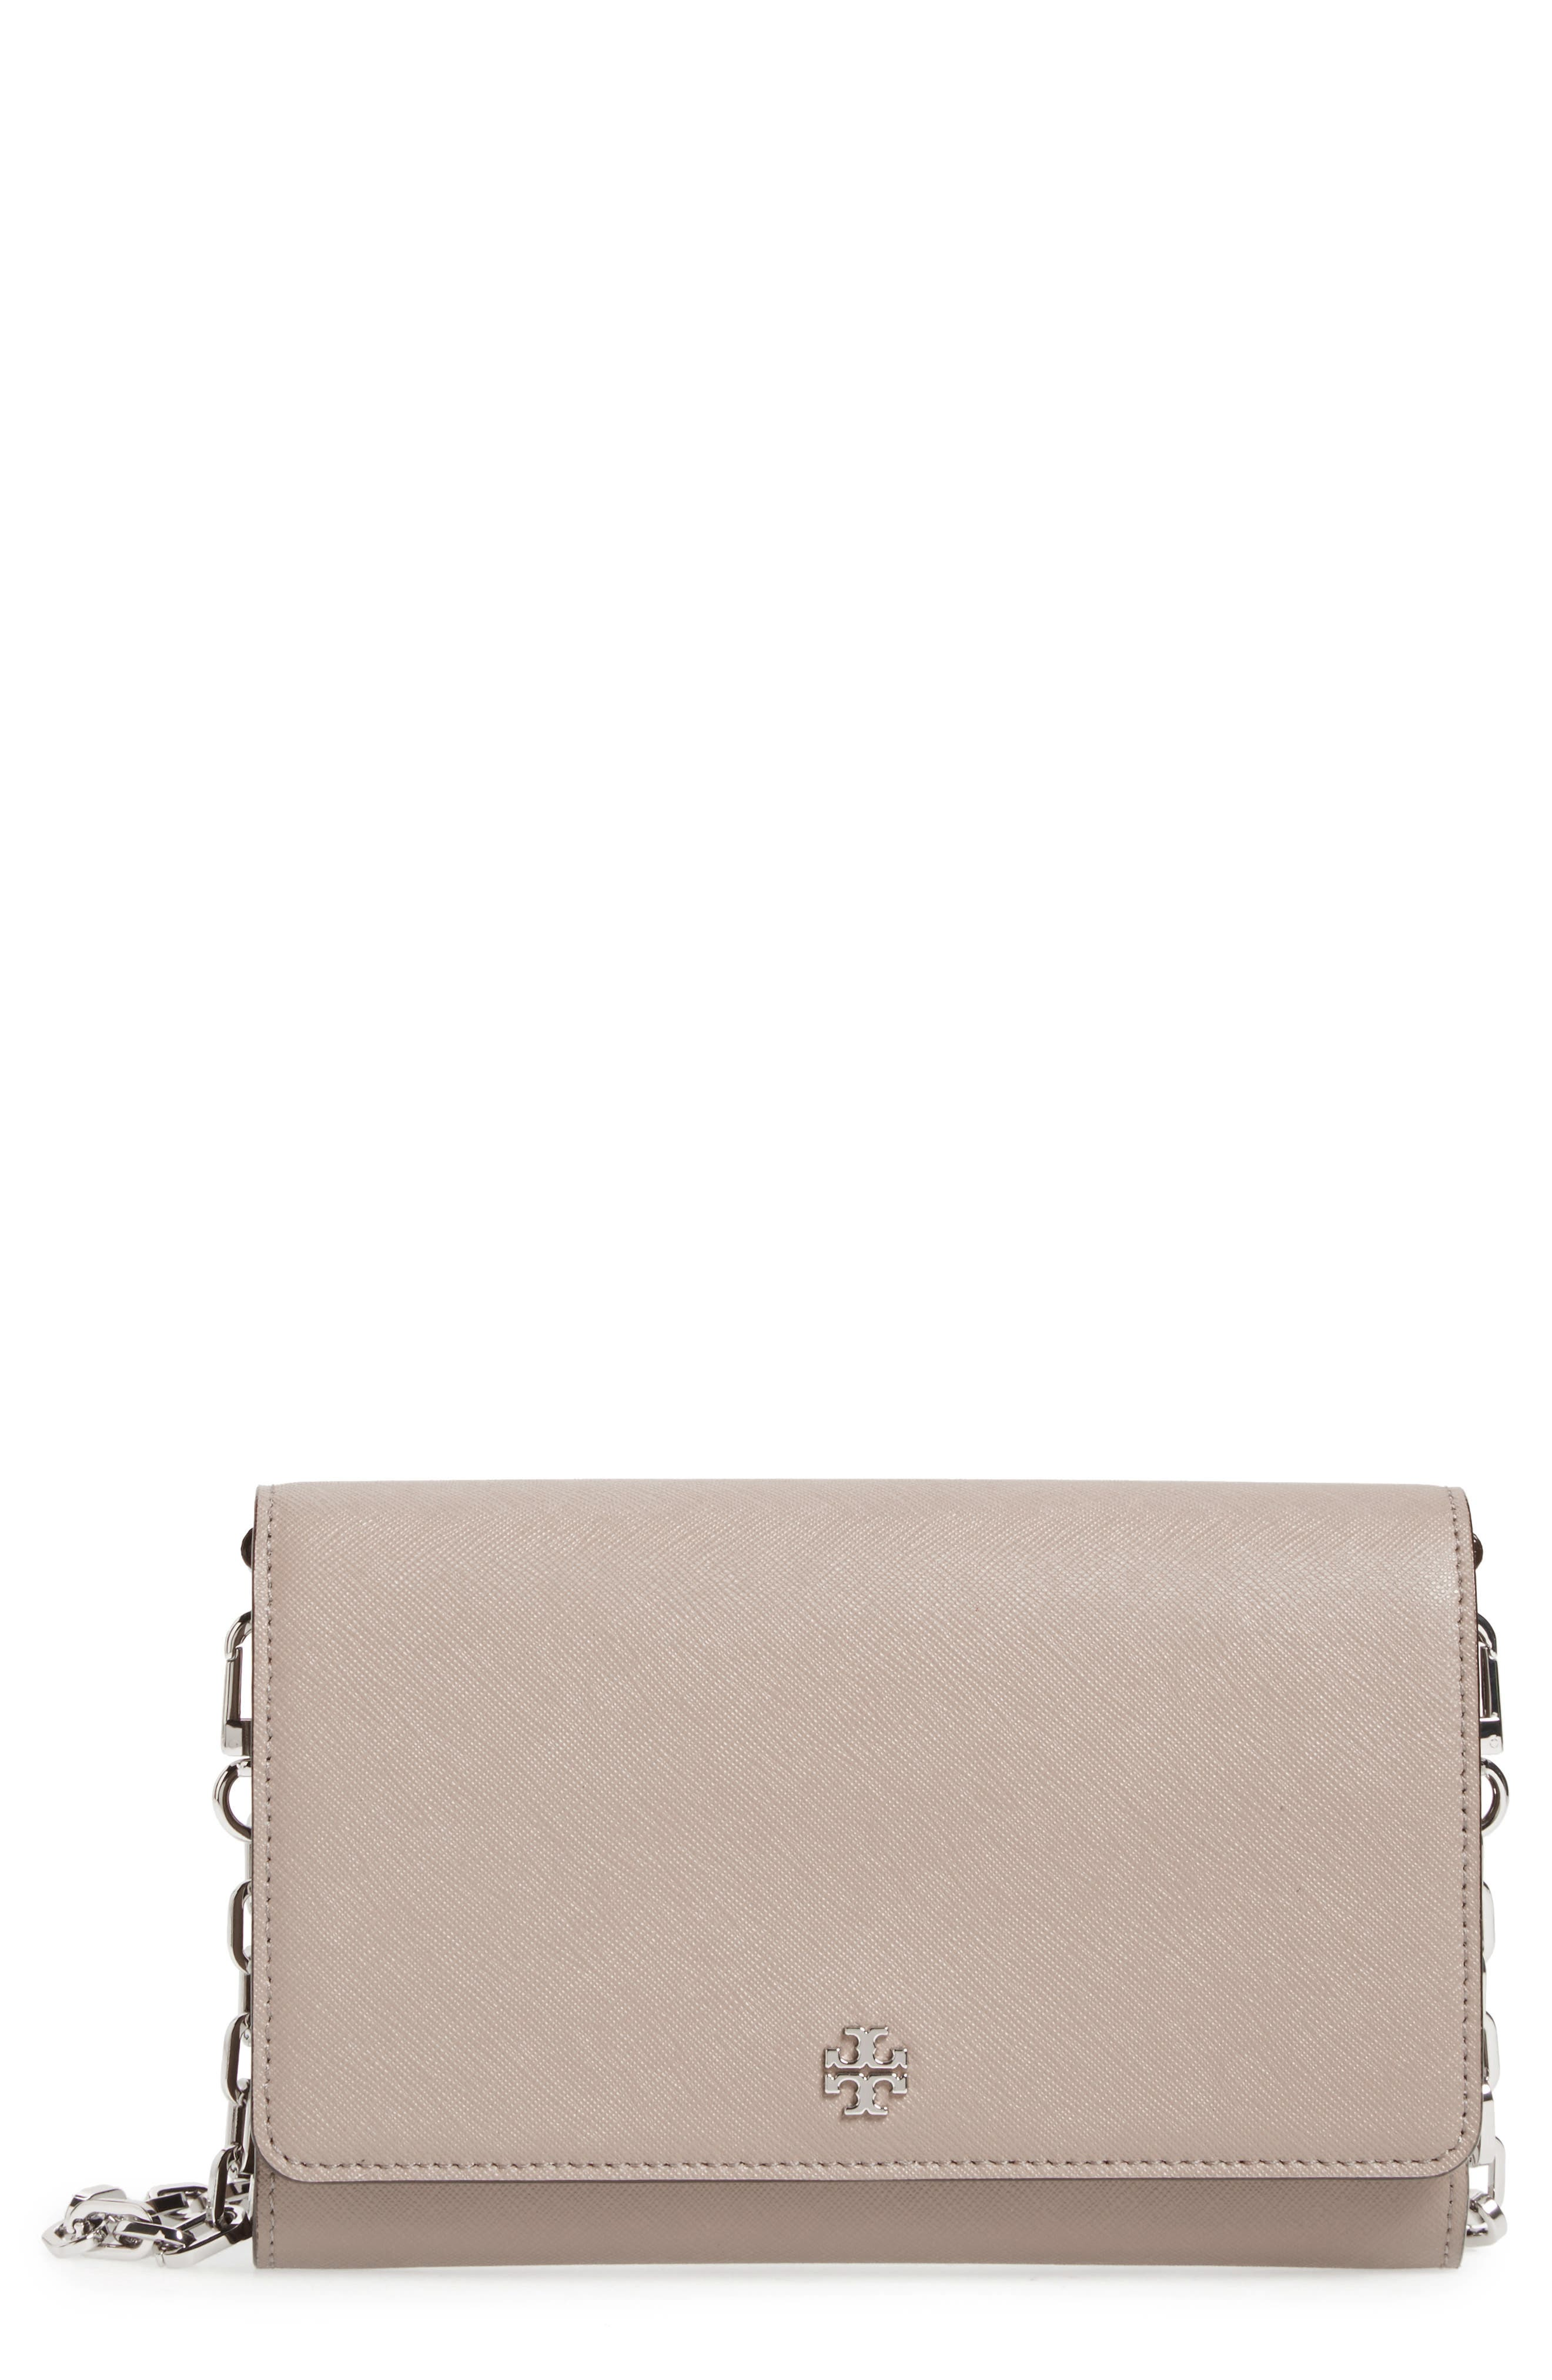 Tory Burch 'Robinson' Leather Wallet on ...